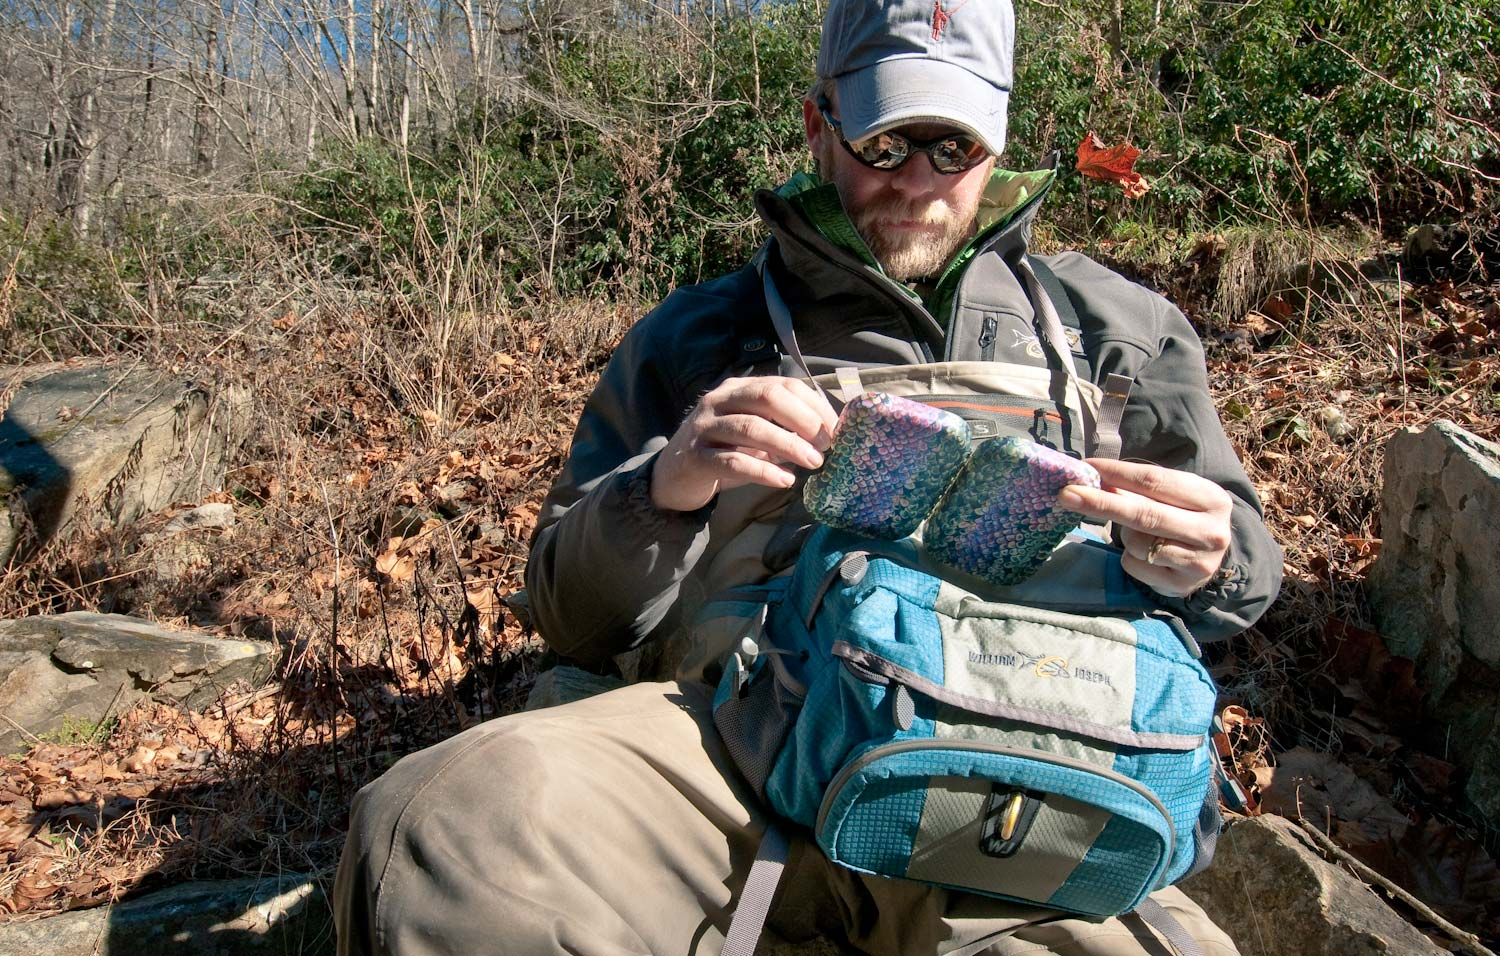 Fly fishing waist pack fly fishing gink and gasoline for Fly fishing packs